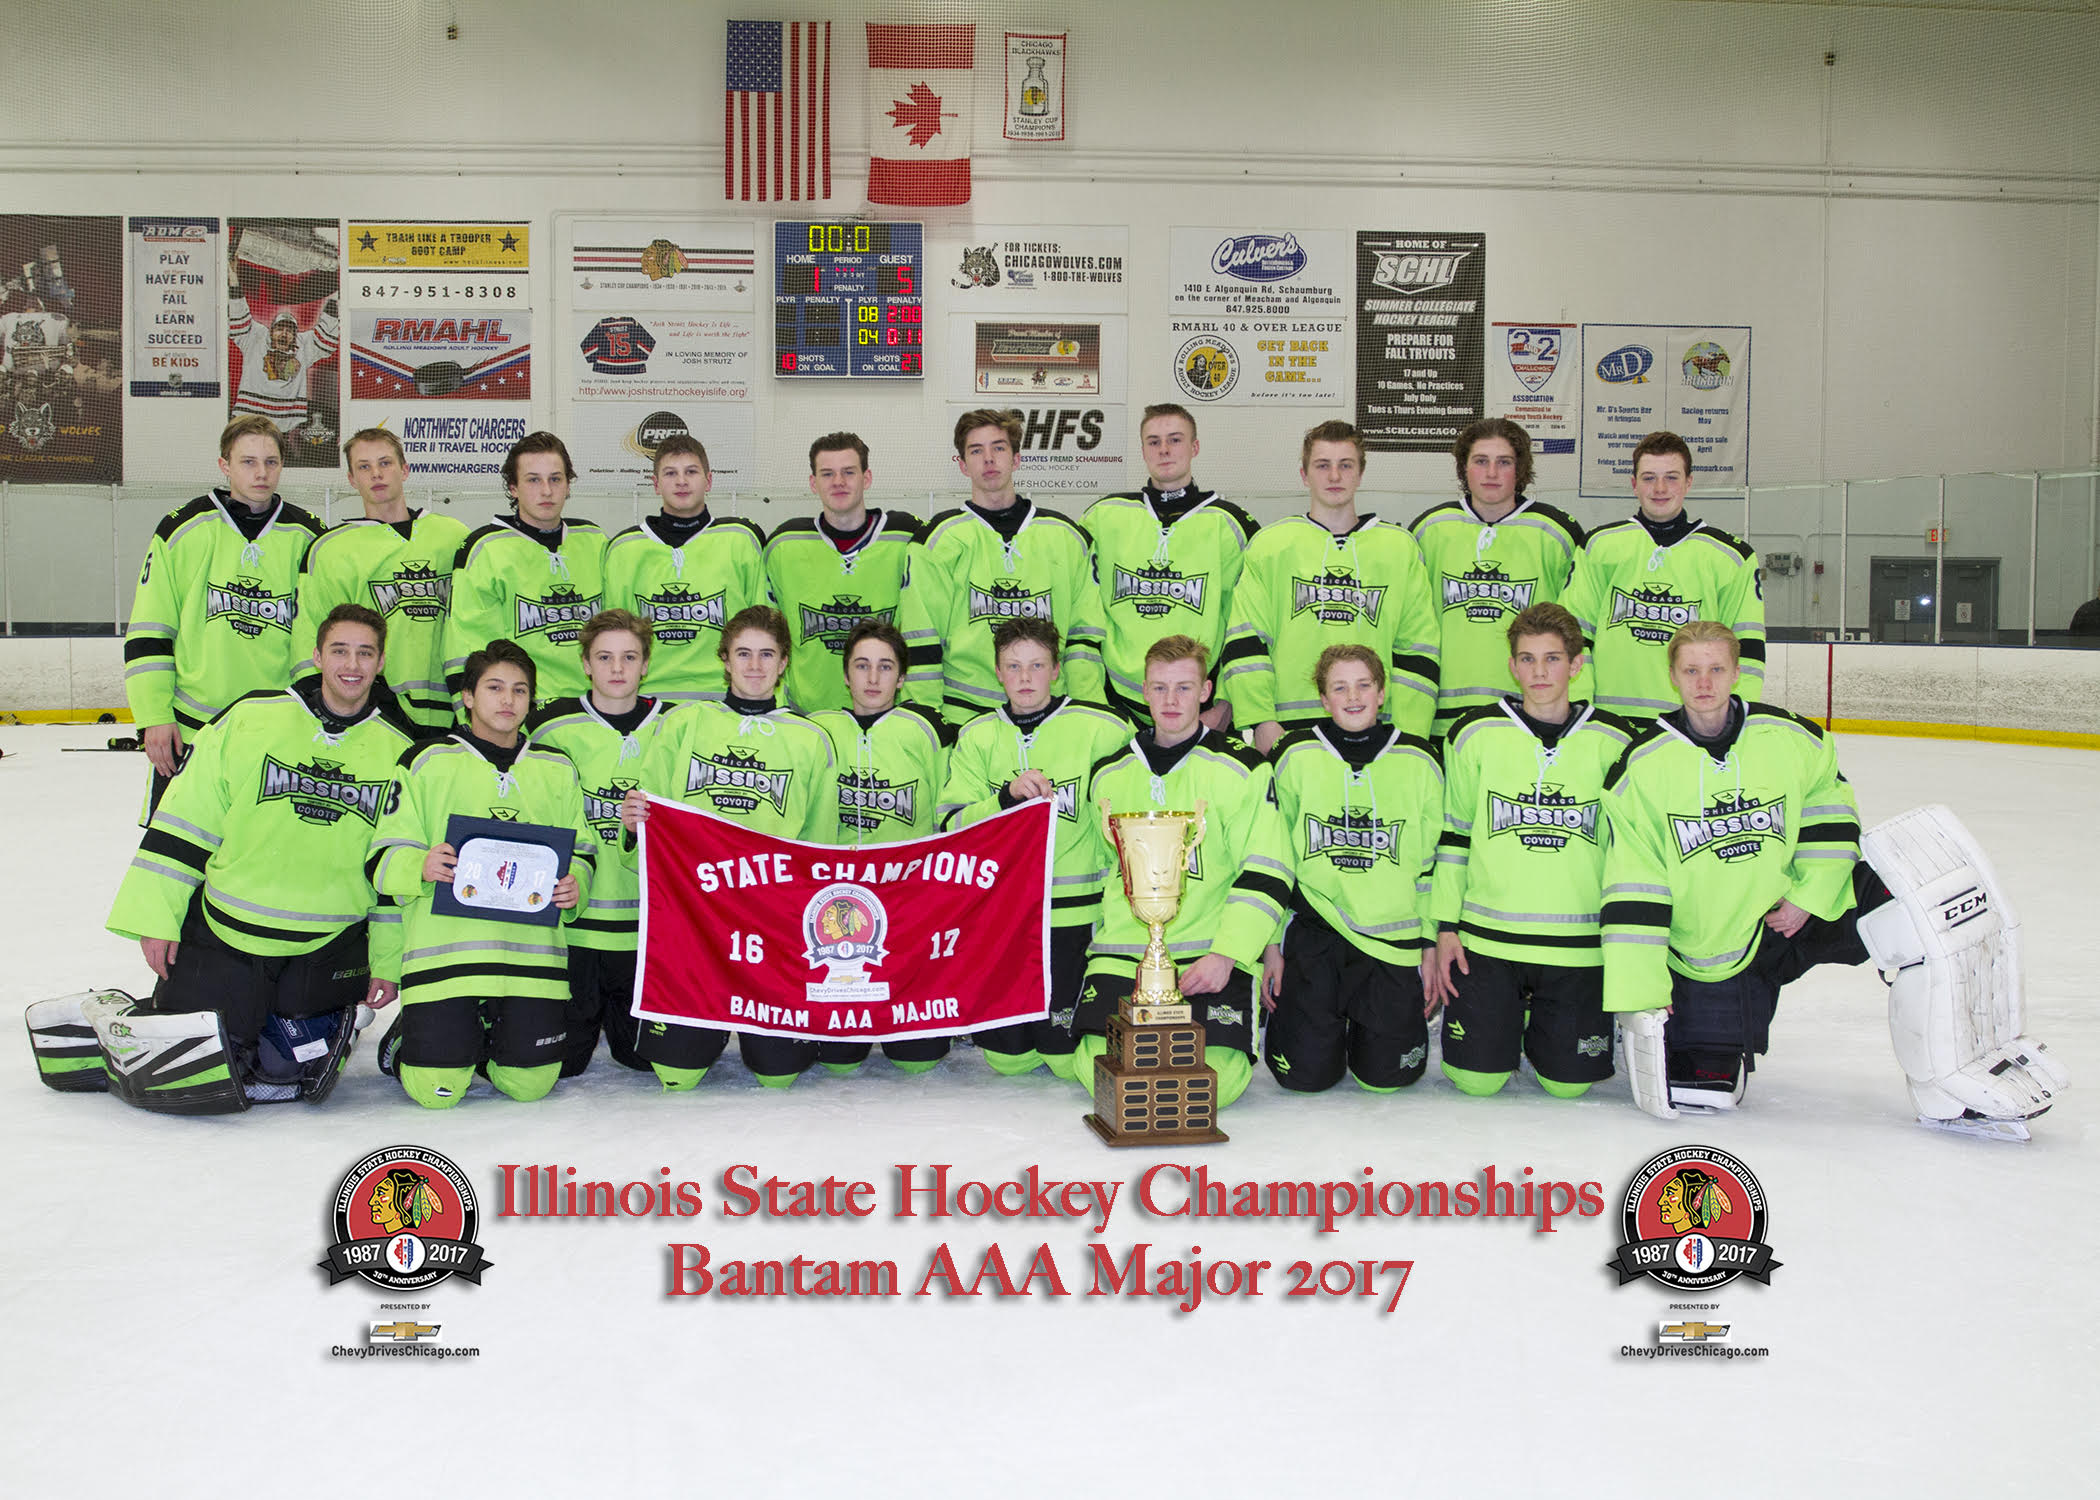 Mission 2002's State Champions